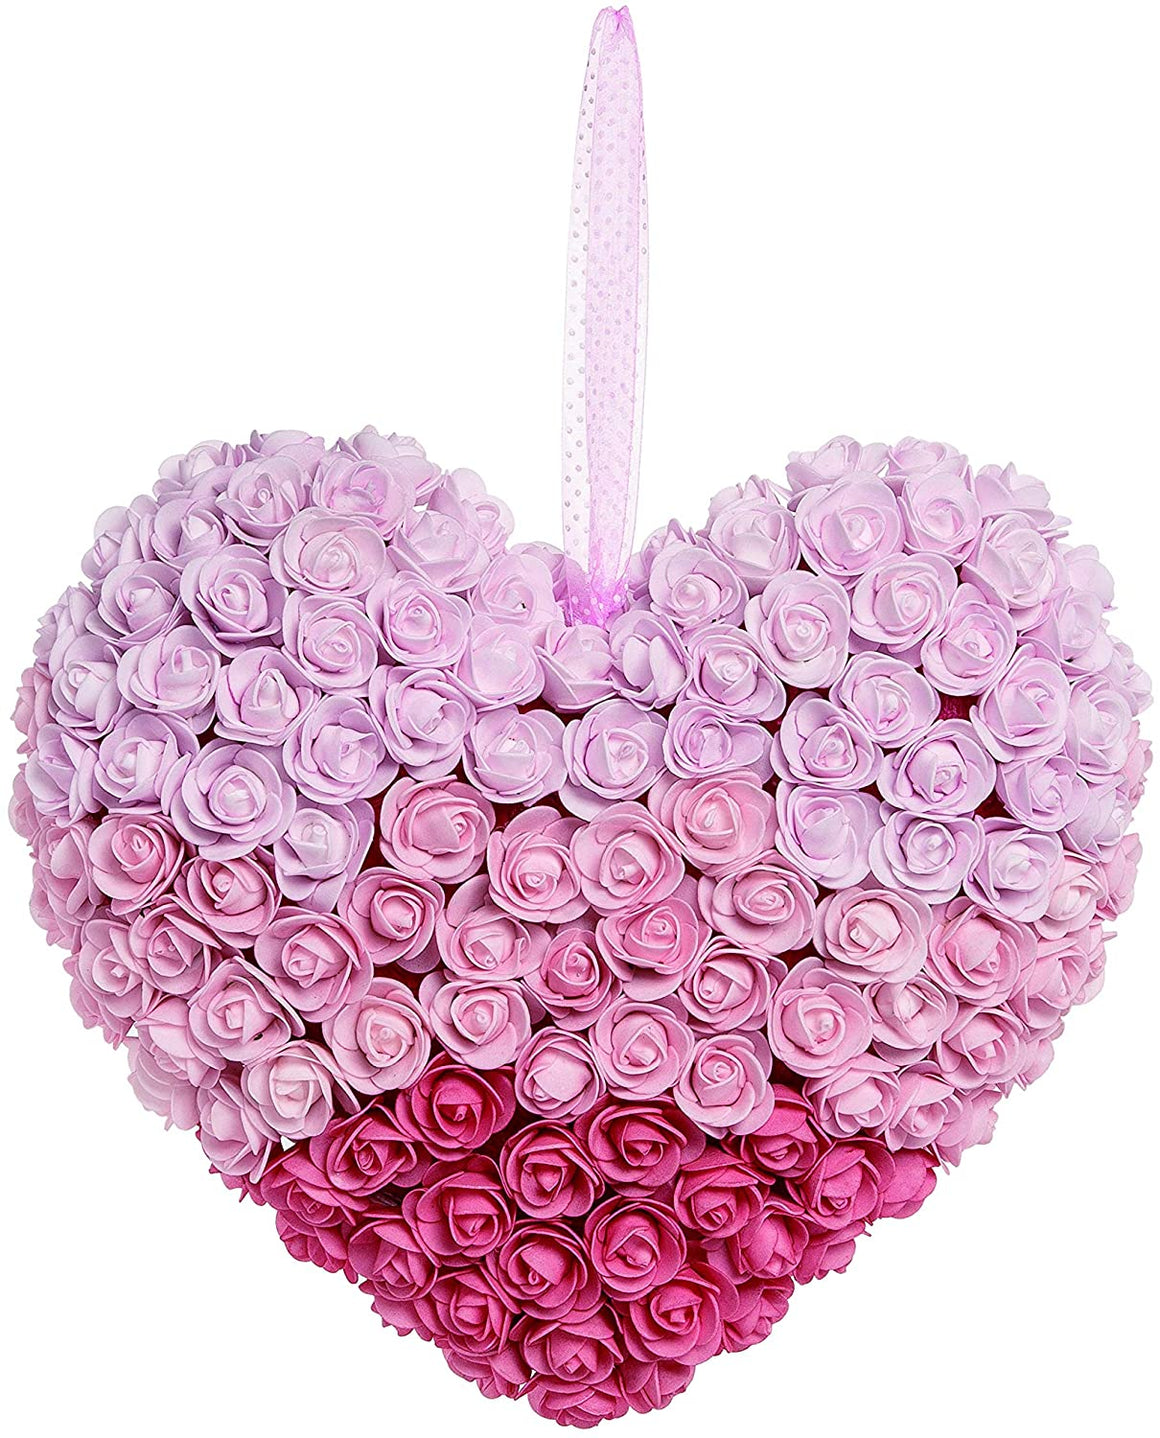 TII Soft Rose Heart Shaped Valentine's Day Wreath, 15.5 Inches in Soft Pinks with Hanging Ribbon